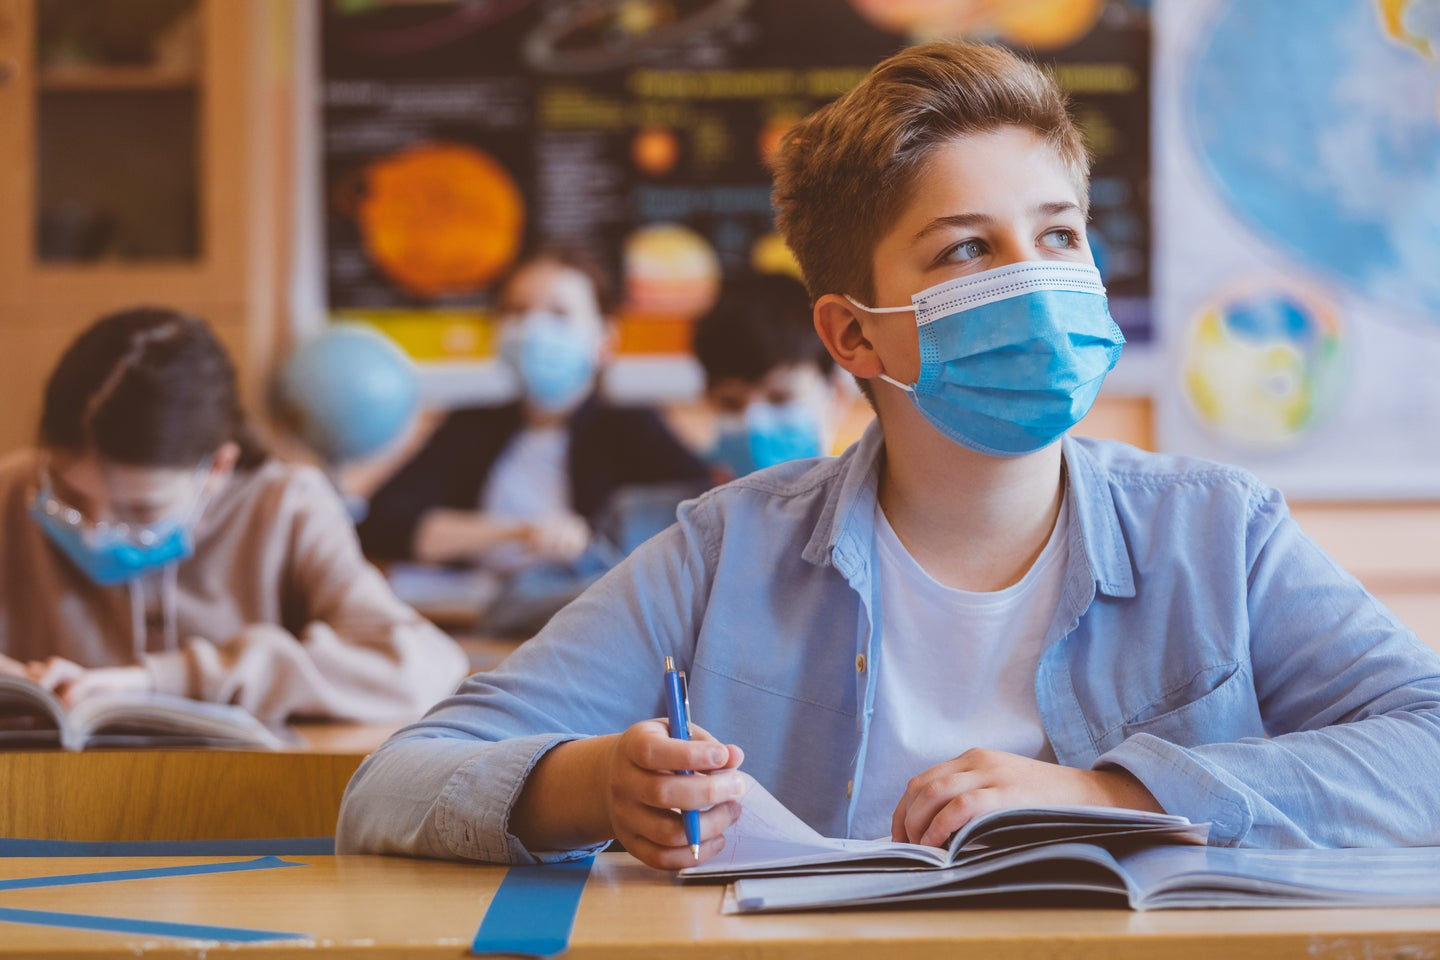 Data on COVID-19 outbreaks in schools was sparse, so this teacher collected it herself